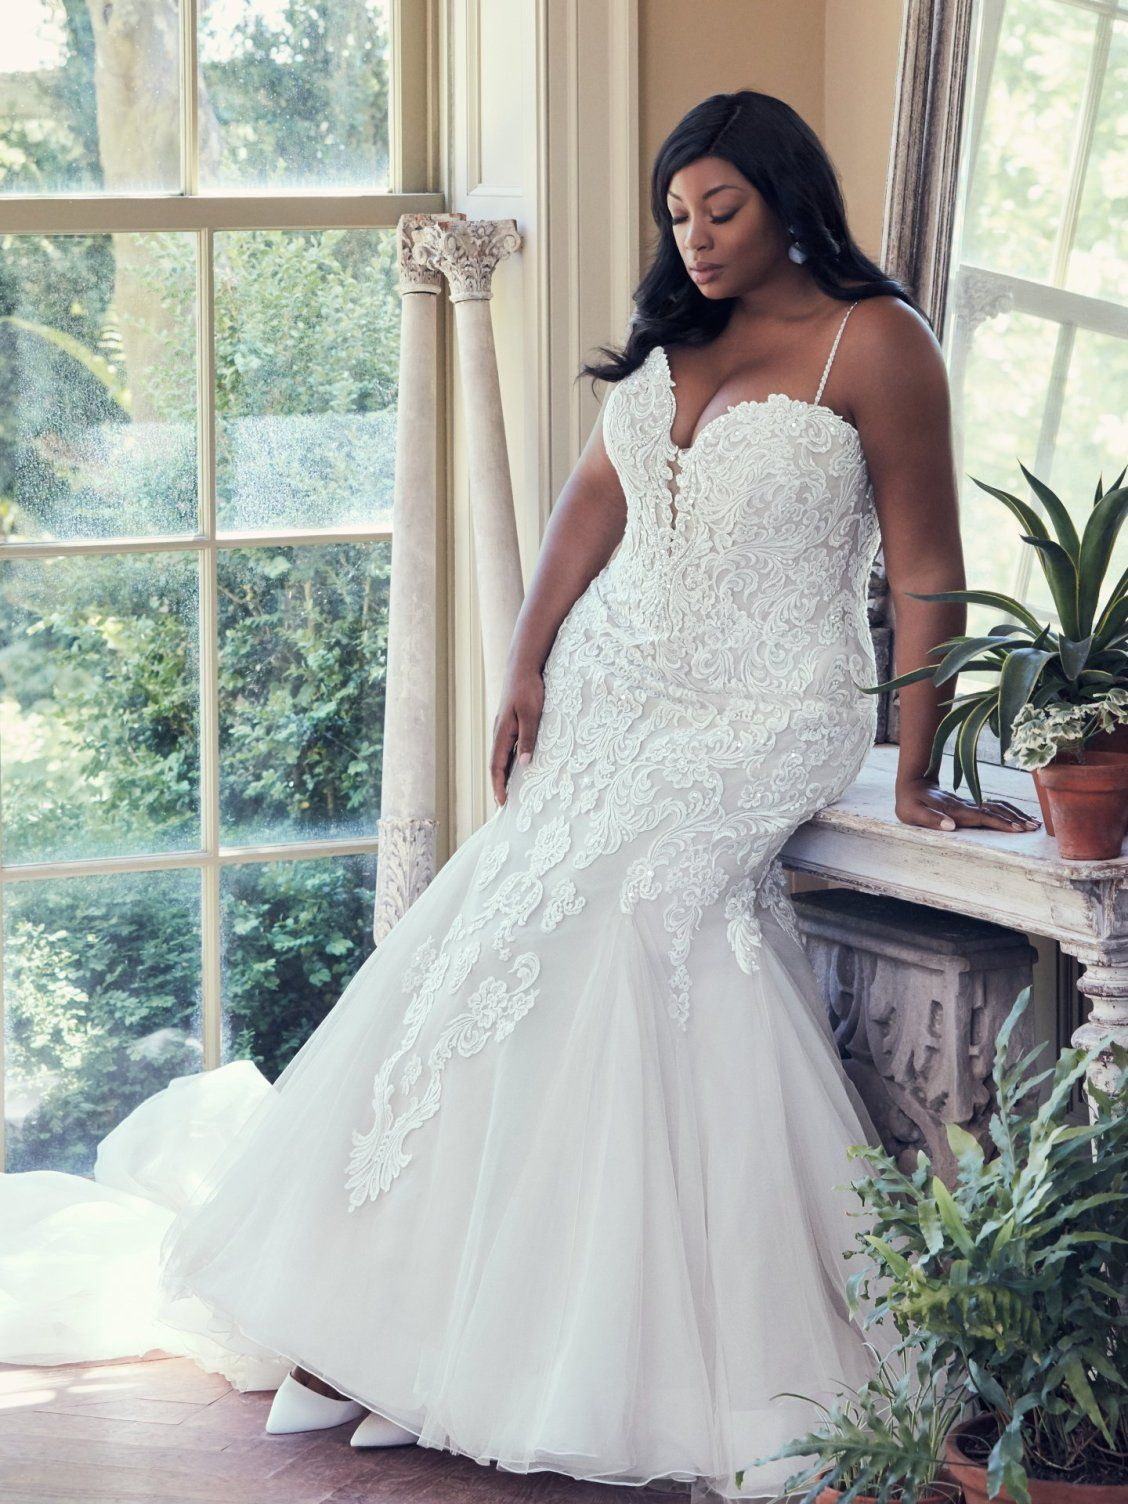 Alistaire Lynette By Maggie Sottero Wedding Dresses And Accessories Sottero Wedding Dress Wedding Dresses Maggie Sottero Wedding Dresses [ 1504 x 1128 Pixel ]